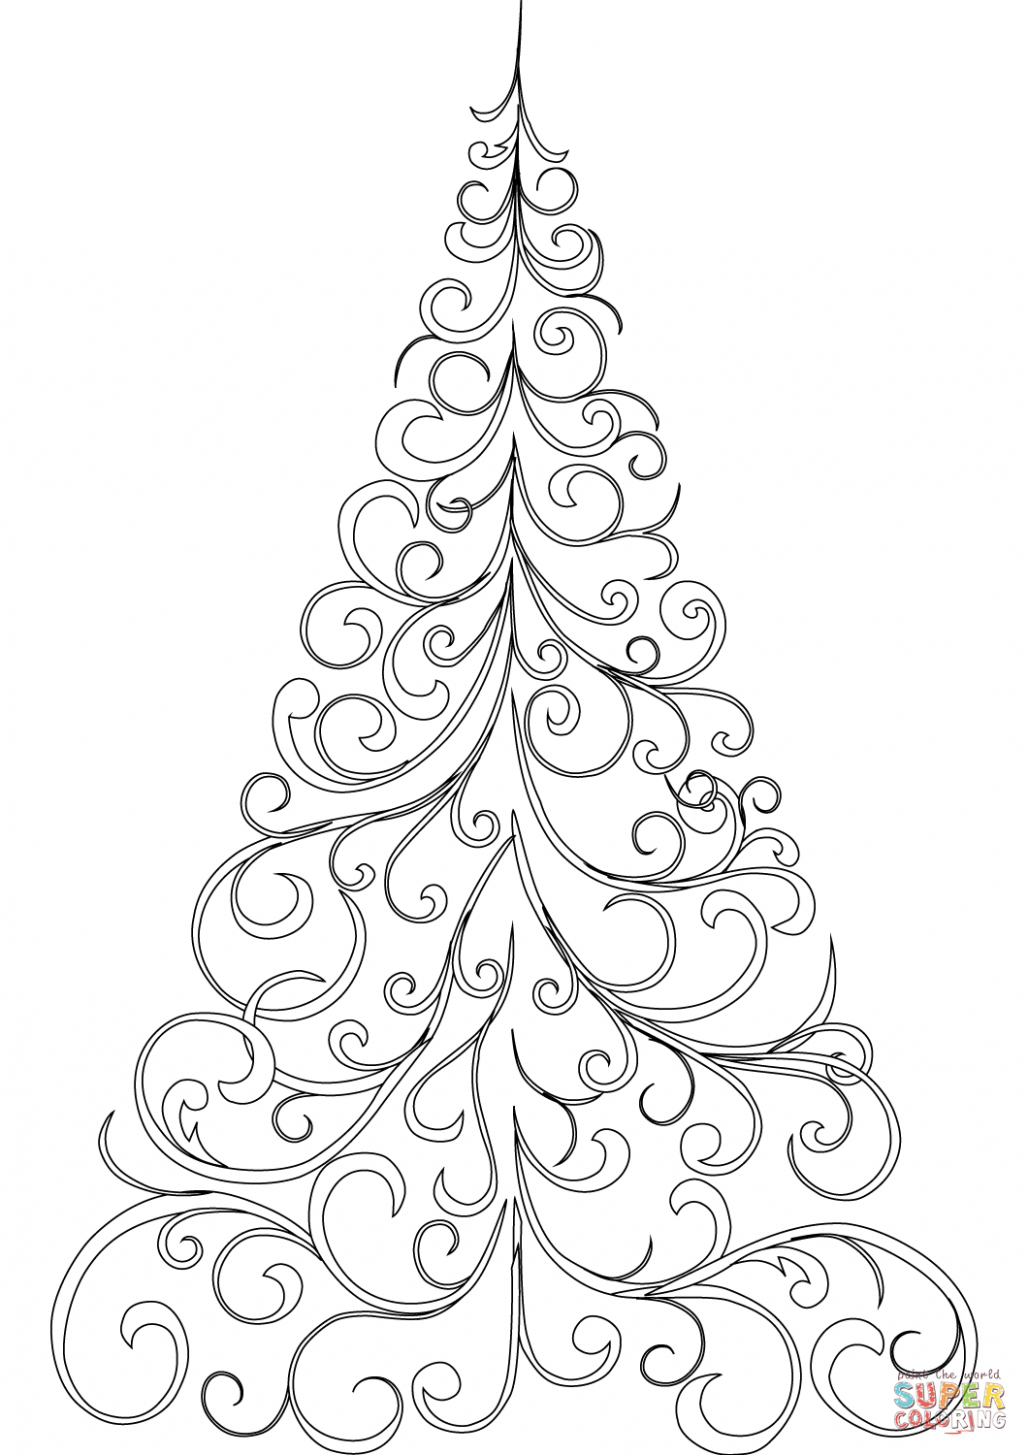 Swirly Christmas Tree coloring page | Free Printable Coloring Pages